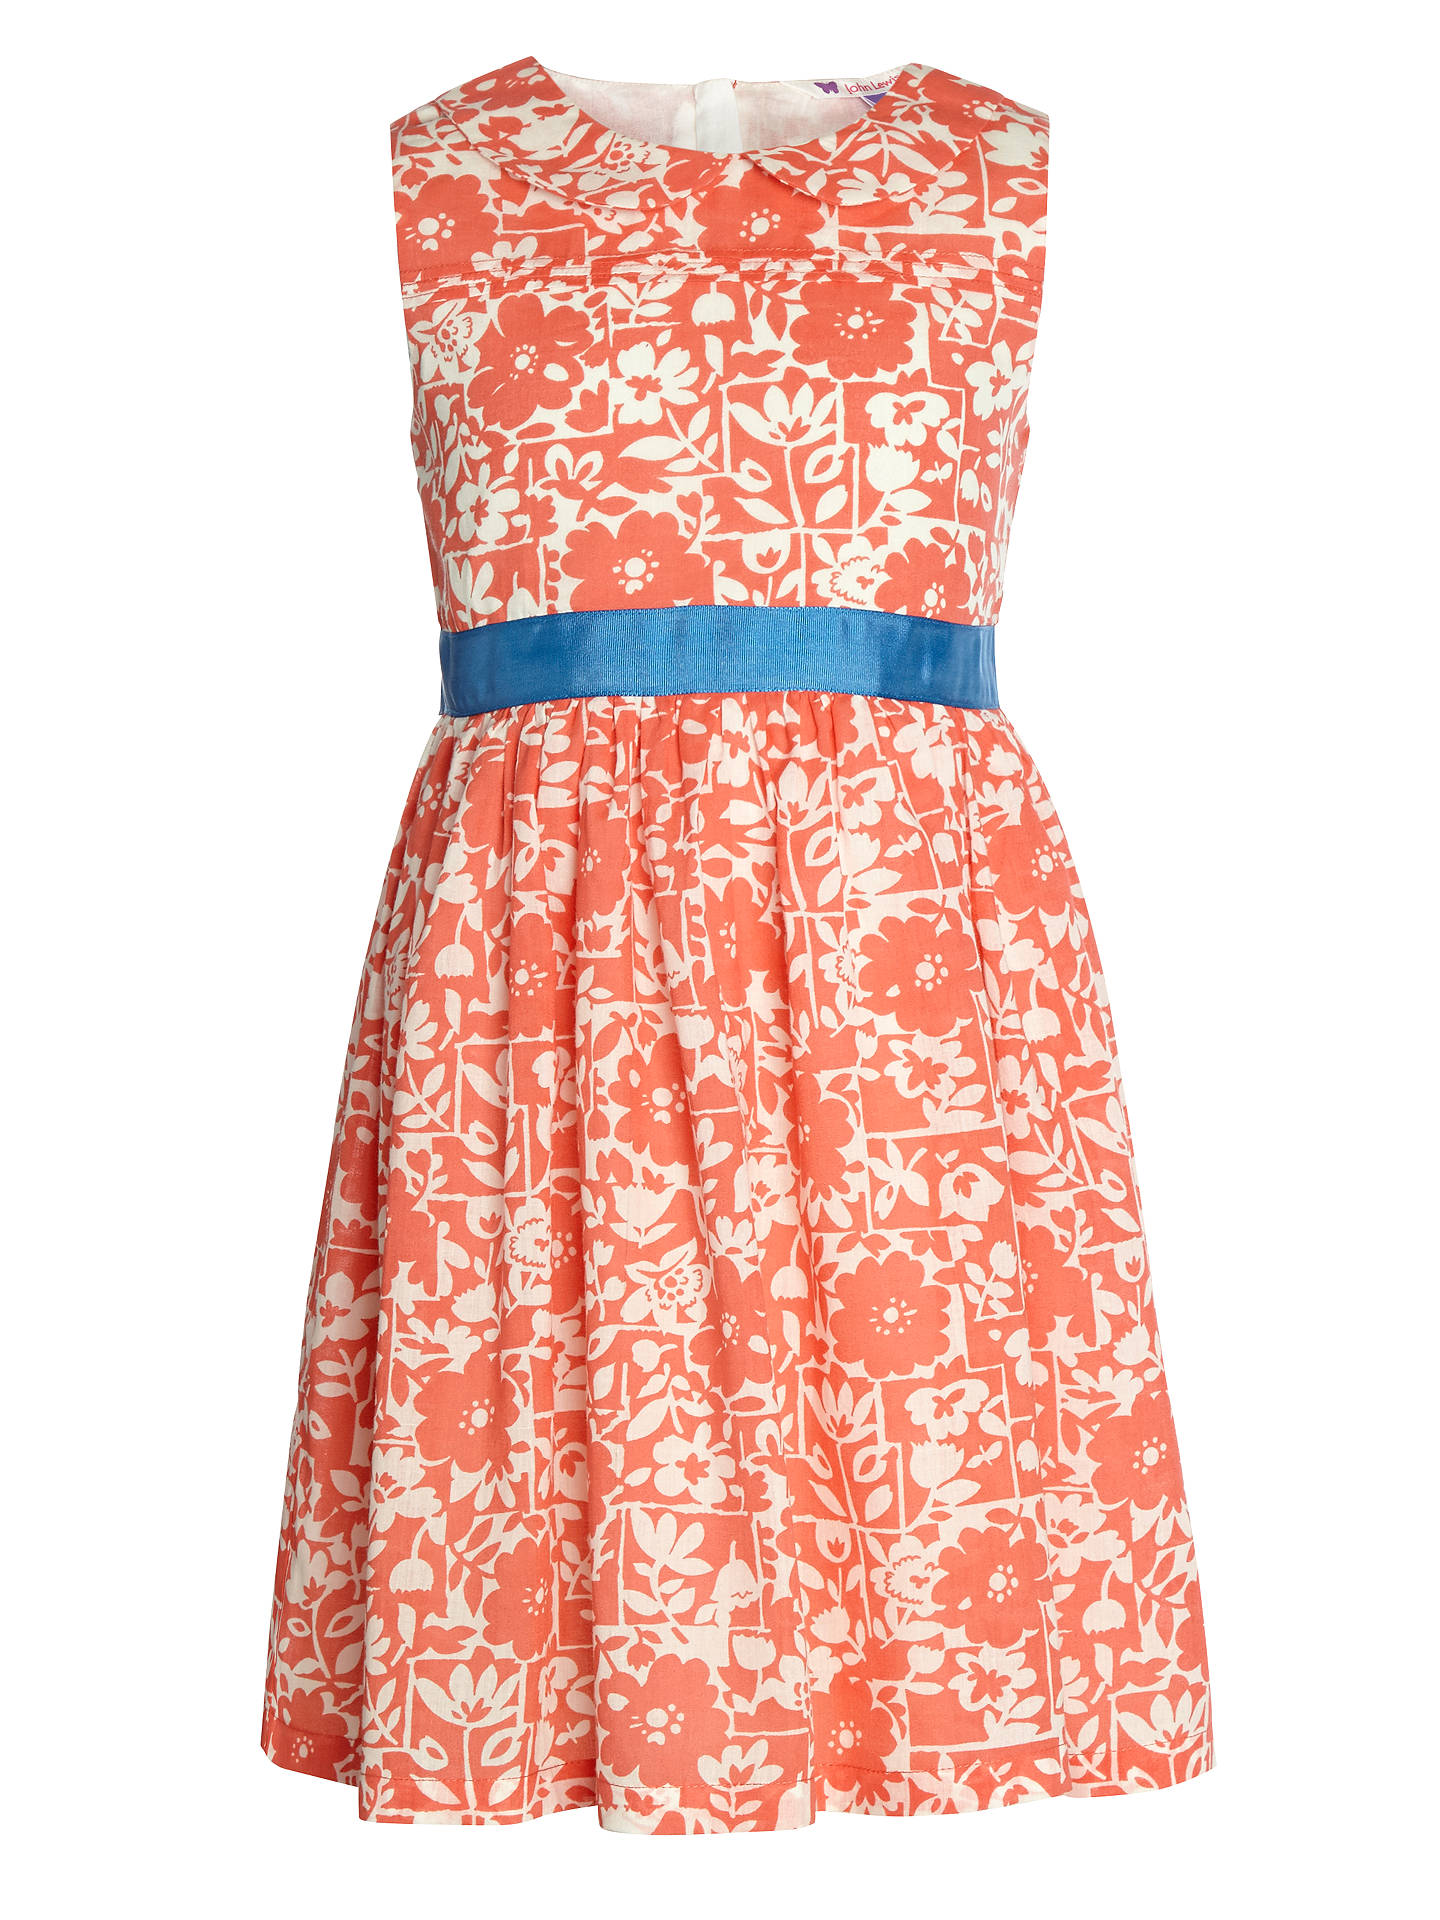 Buy John Lewis Girl Floral Sash Dress, Coral, 2 years Online at johnlewis.com